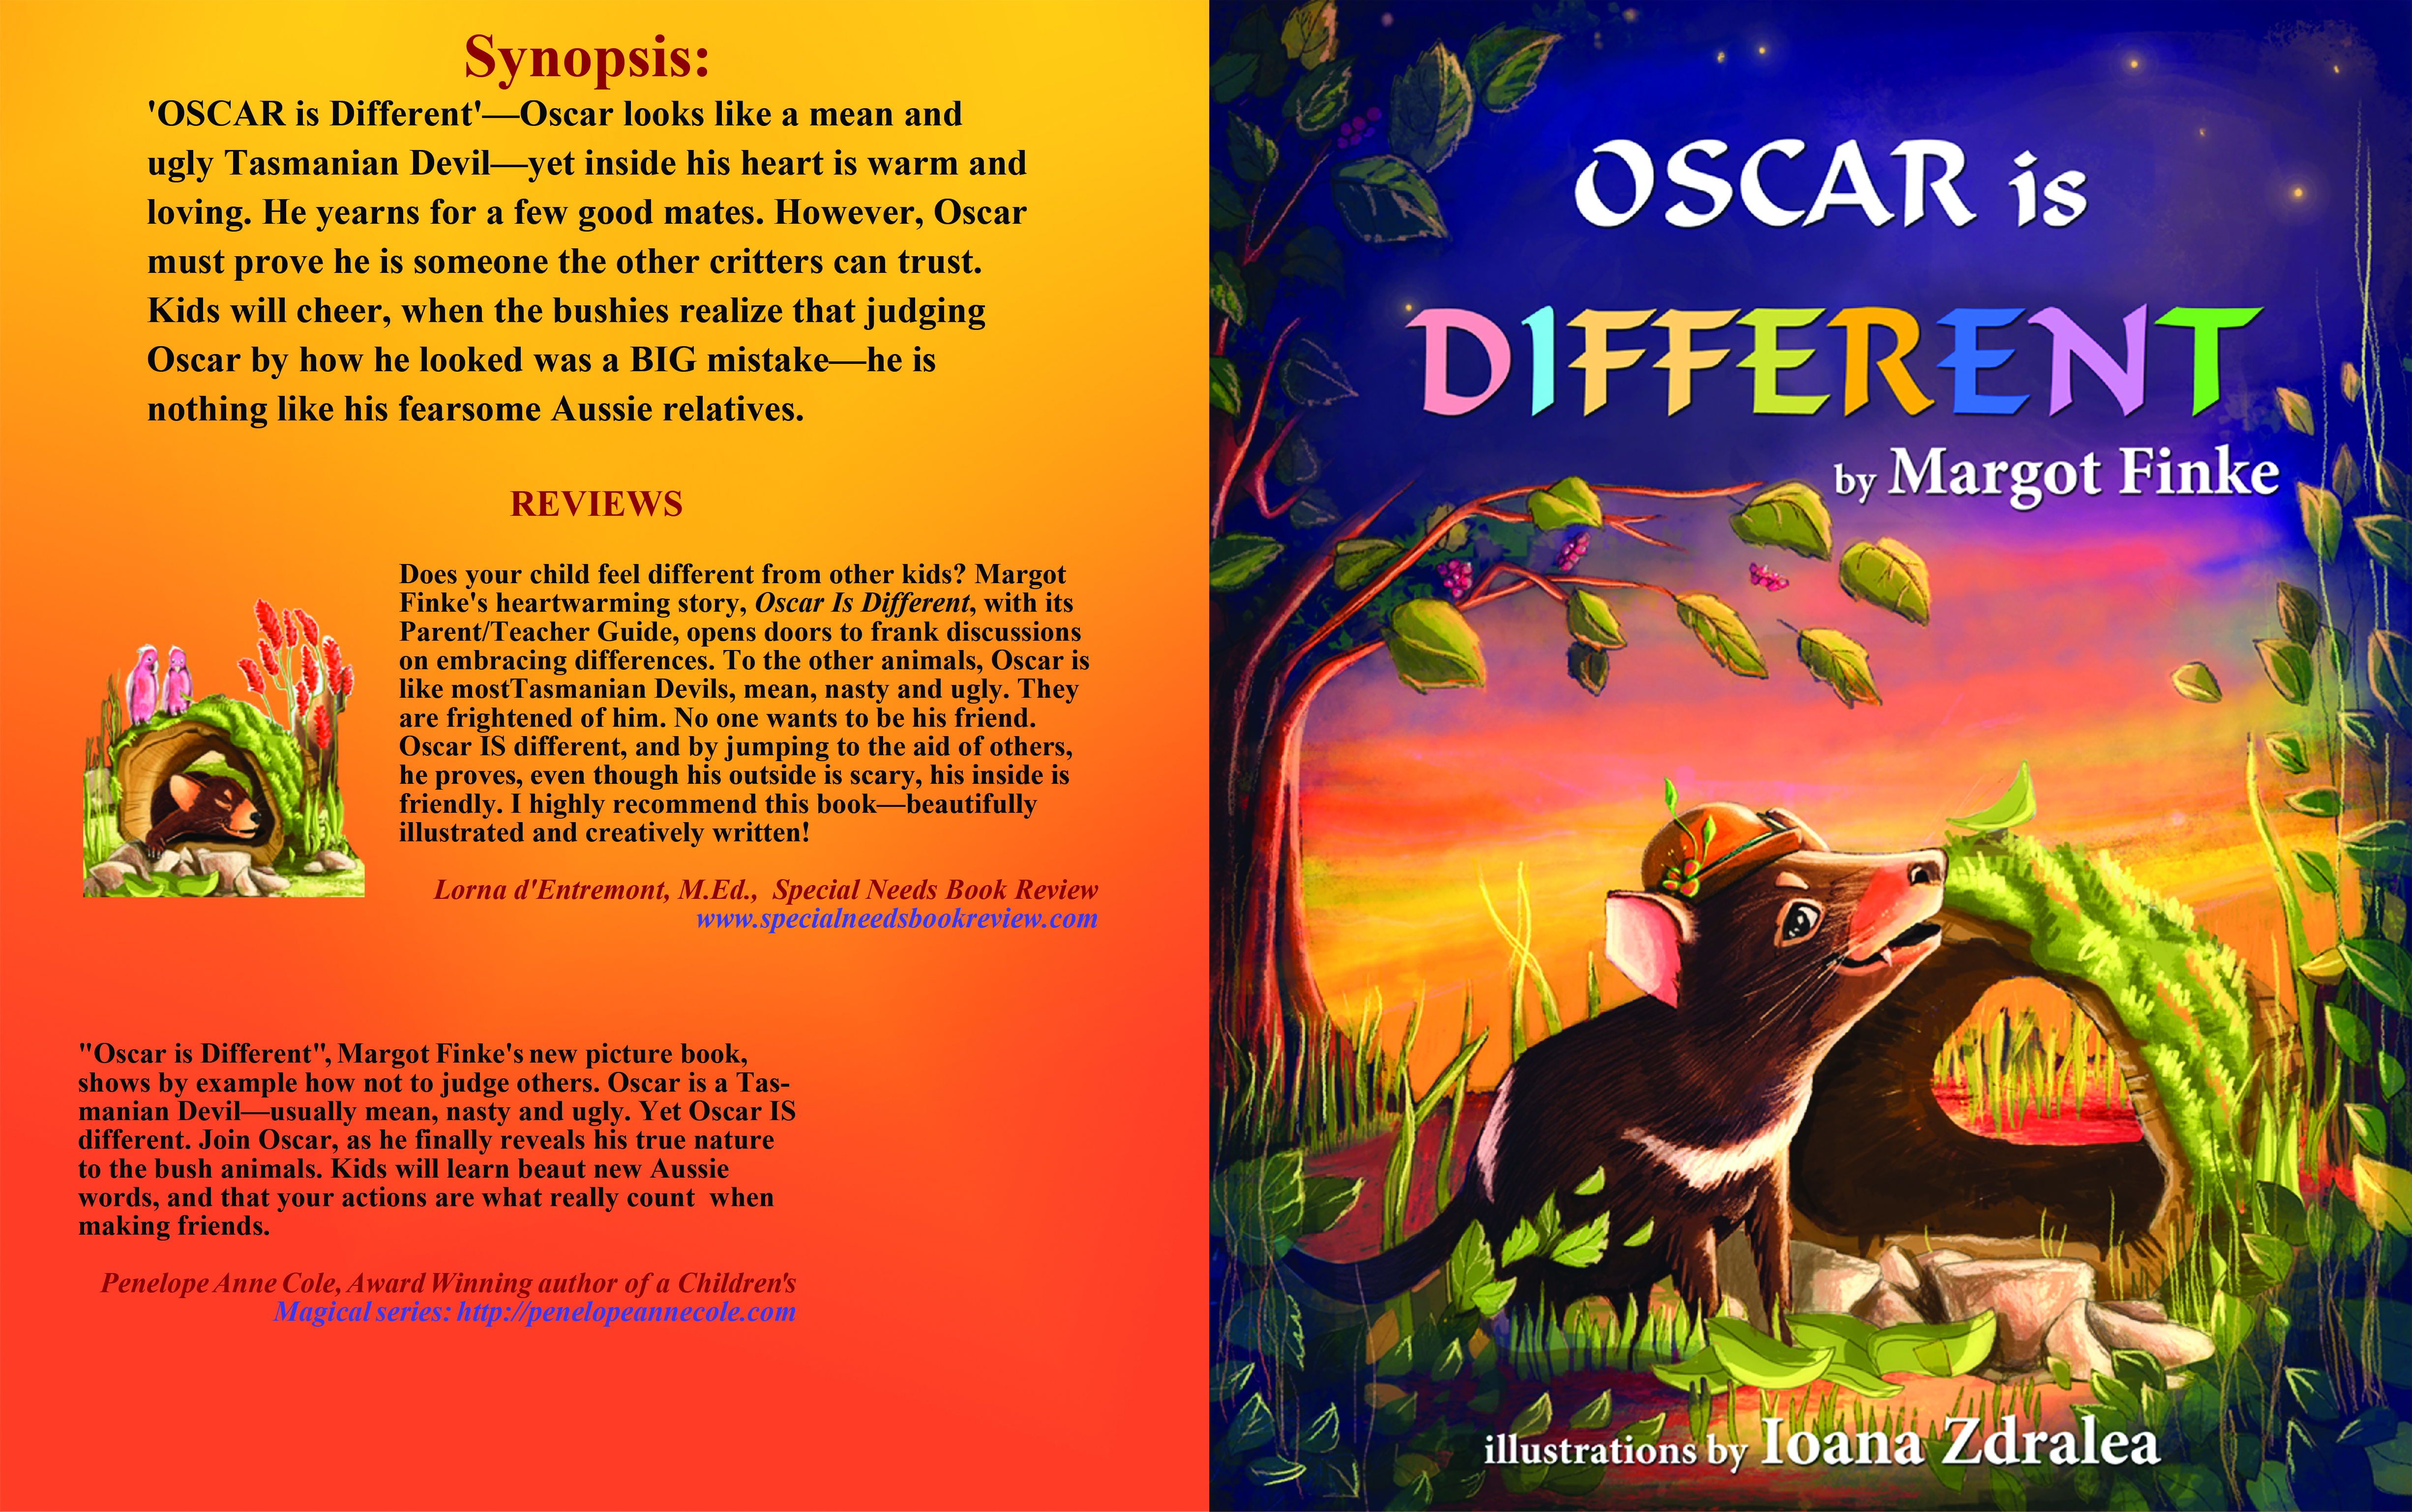 Oscar is Different, Margot Finke, illustrated by Ioana Zdraela (formatted by yours truly),